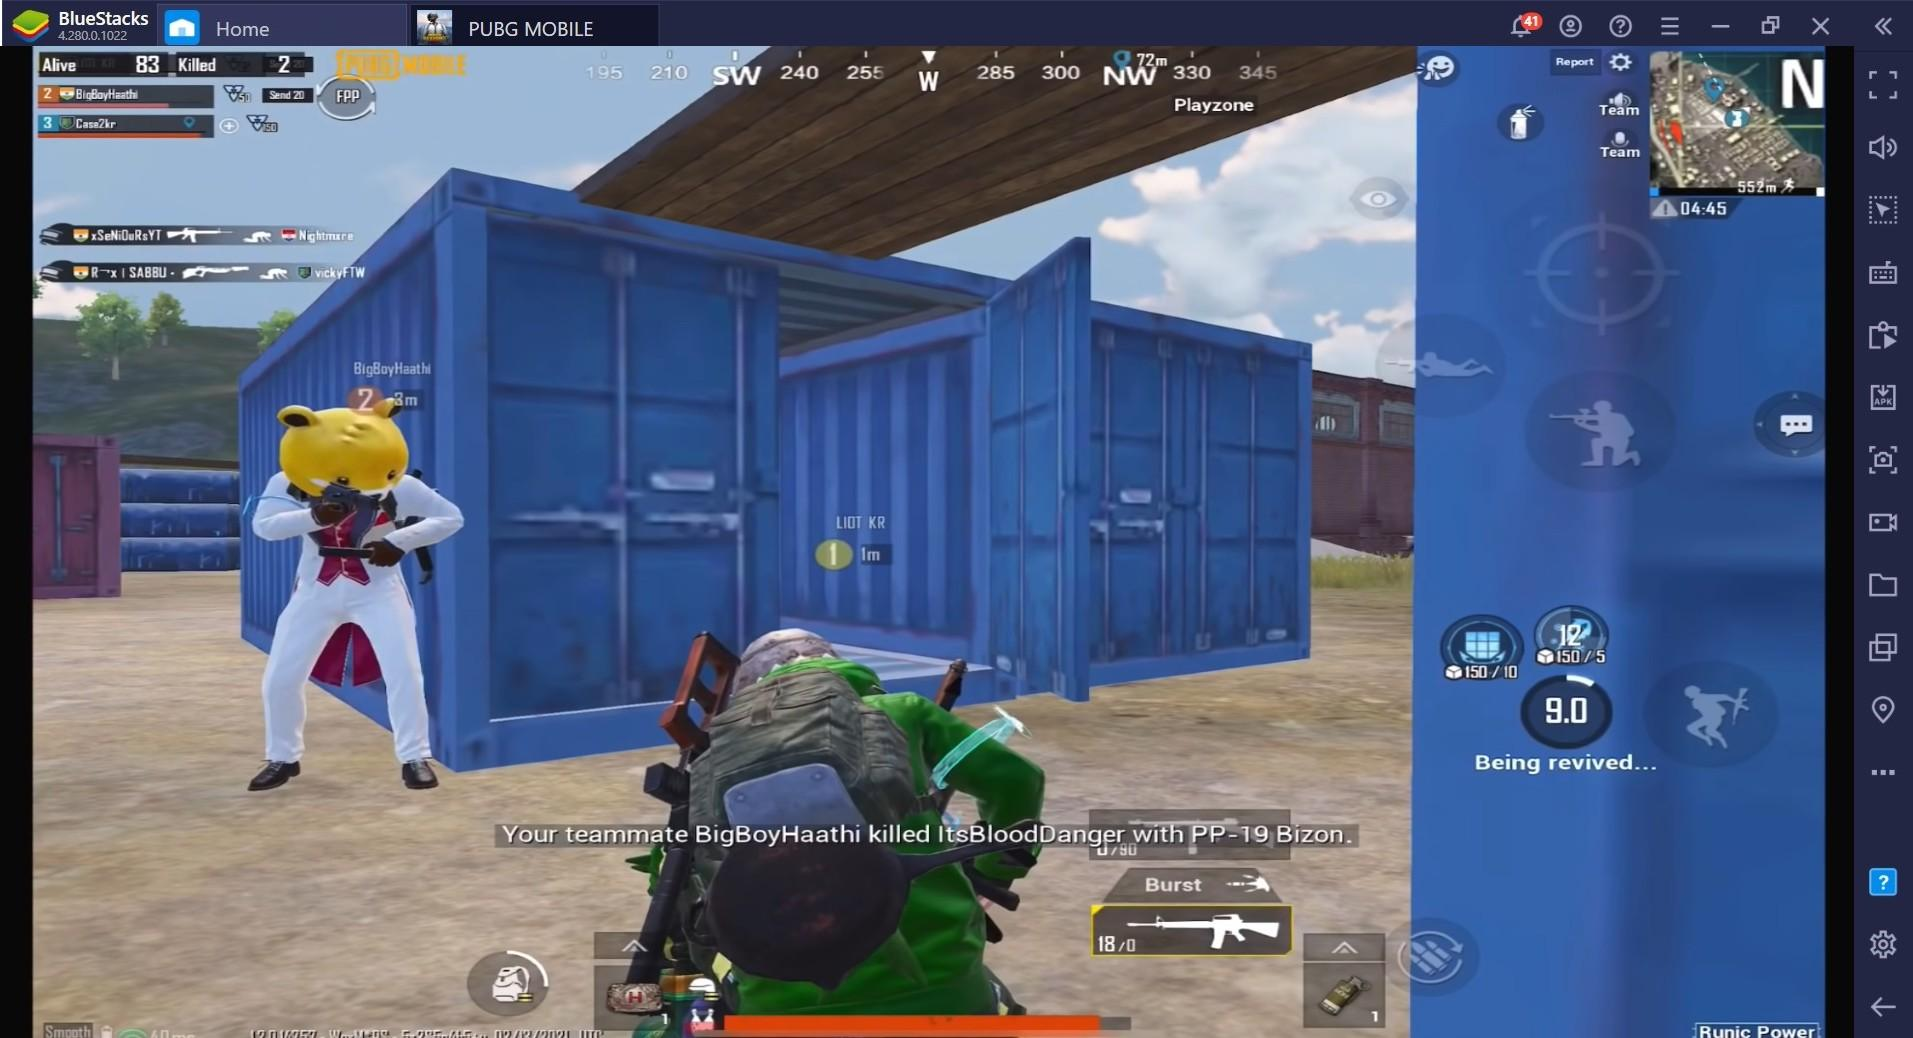 PUBG Mobile Game Guide for Team Deathmatch and Peeking